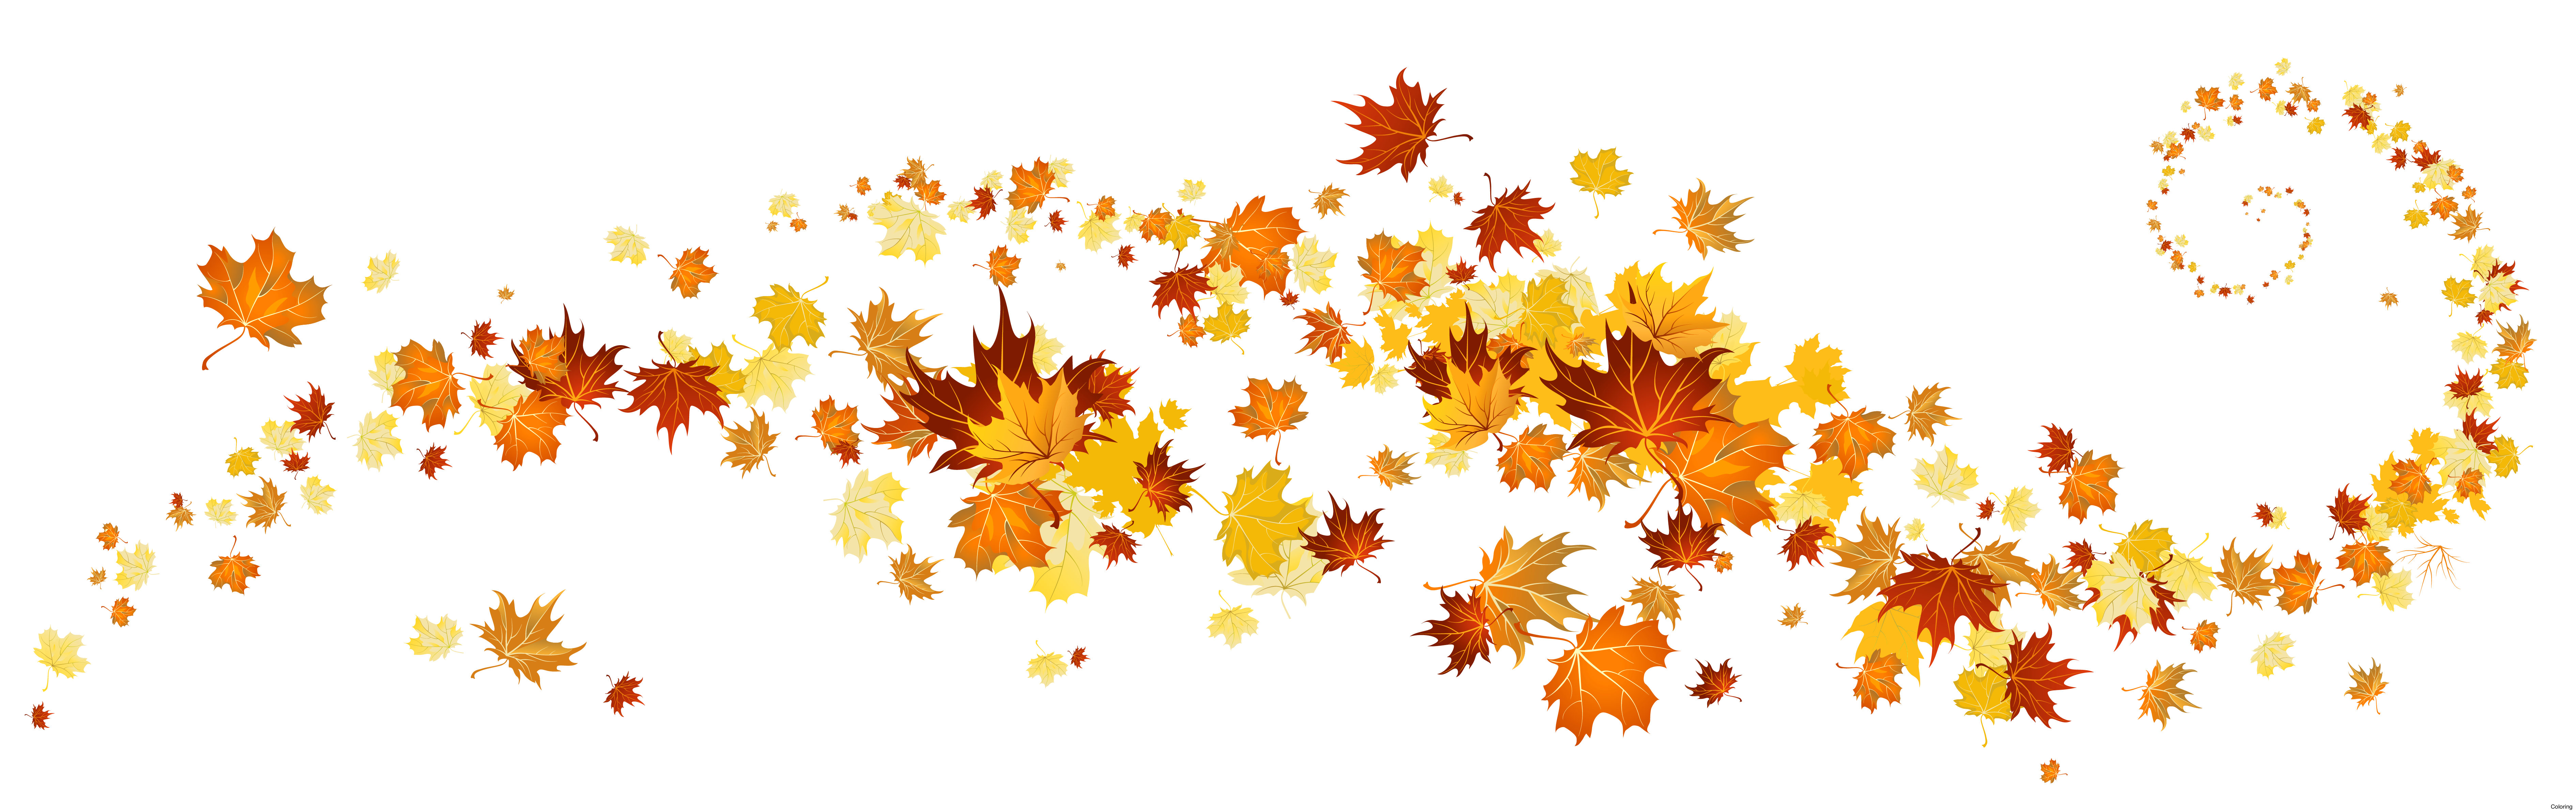 Fall leaves clipart free picture free Free fall leaves clipart clipart images gallery for free download ... picture free